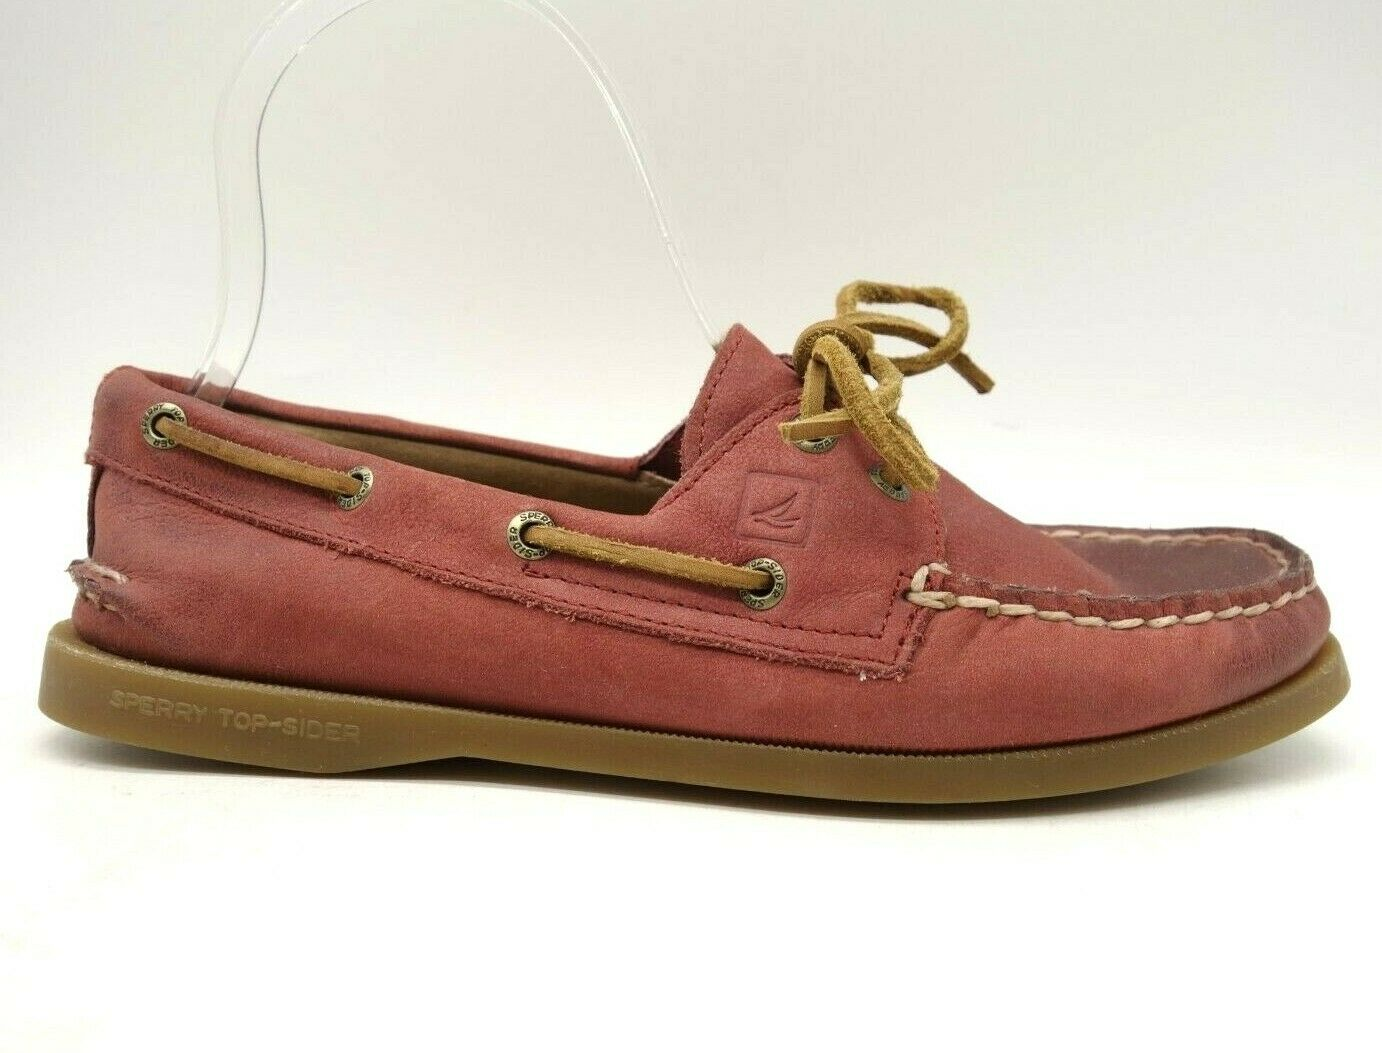 Sperry Top Sider Maroon Leather Casual Deck Boat Loafers Shoes Women's 7.5 M